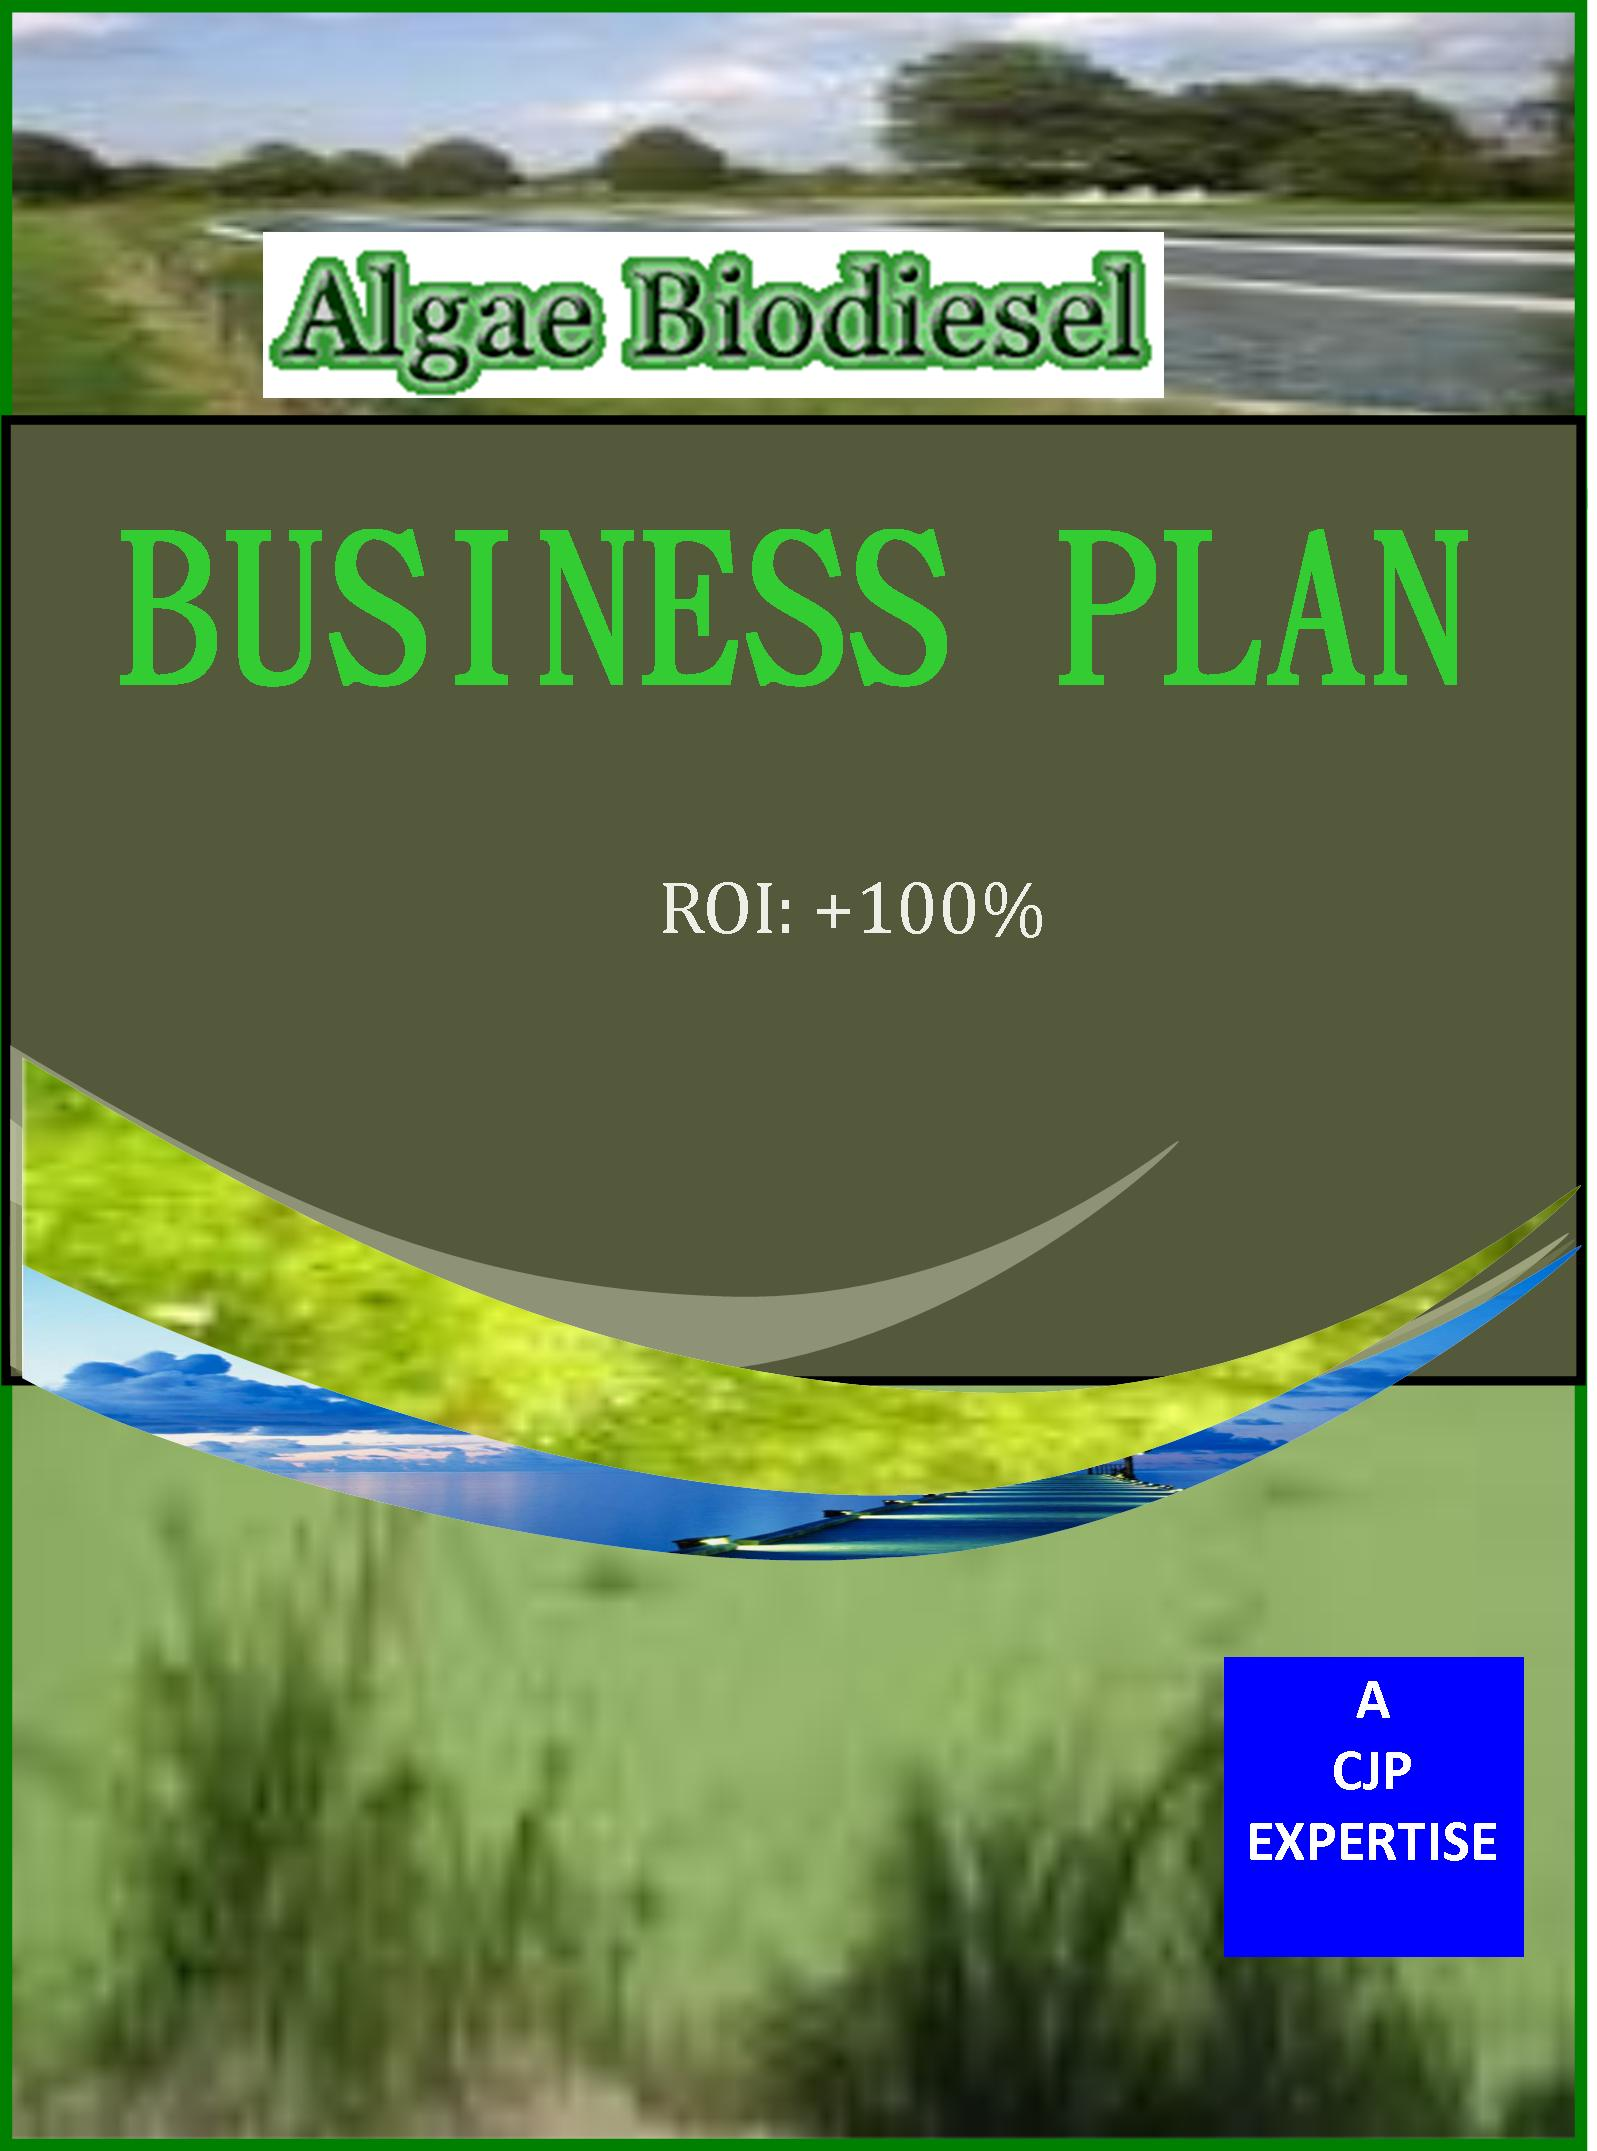 ALGAE BIODIESEL BUSINESS PLAN